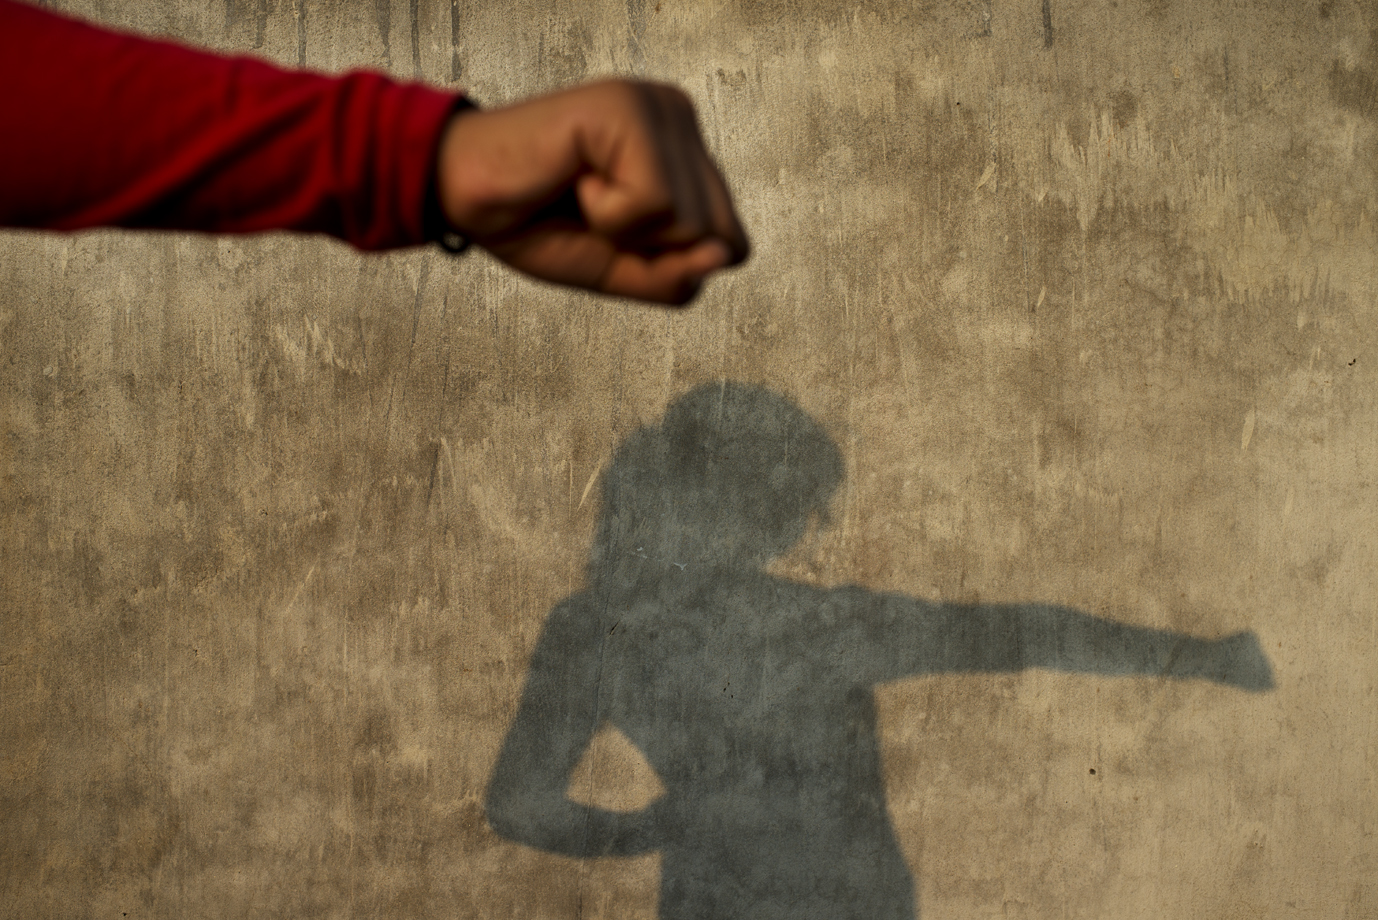 Teenage girl train martial arts to defend her selves against rapists, Uttar Pradesh / India -2014